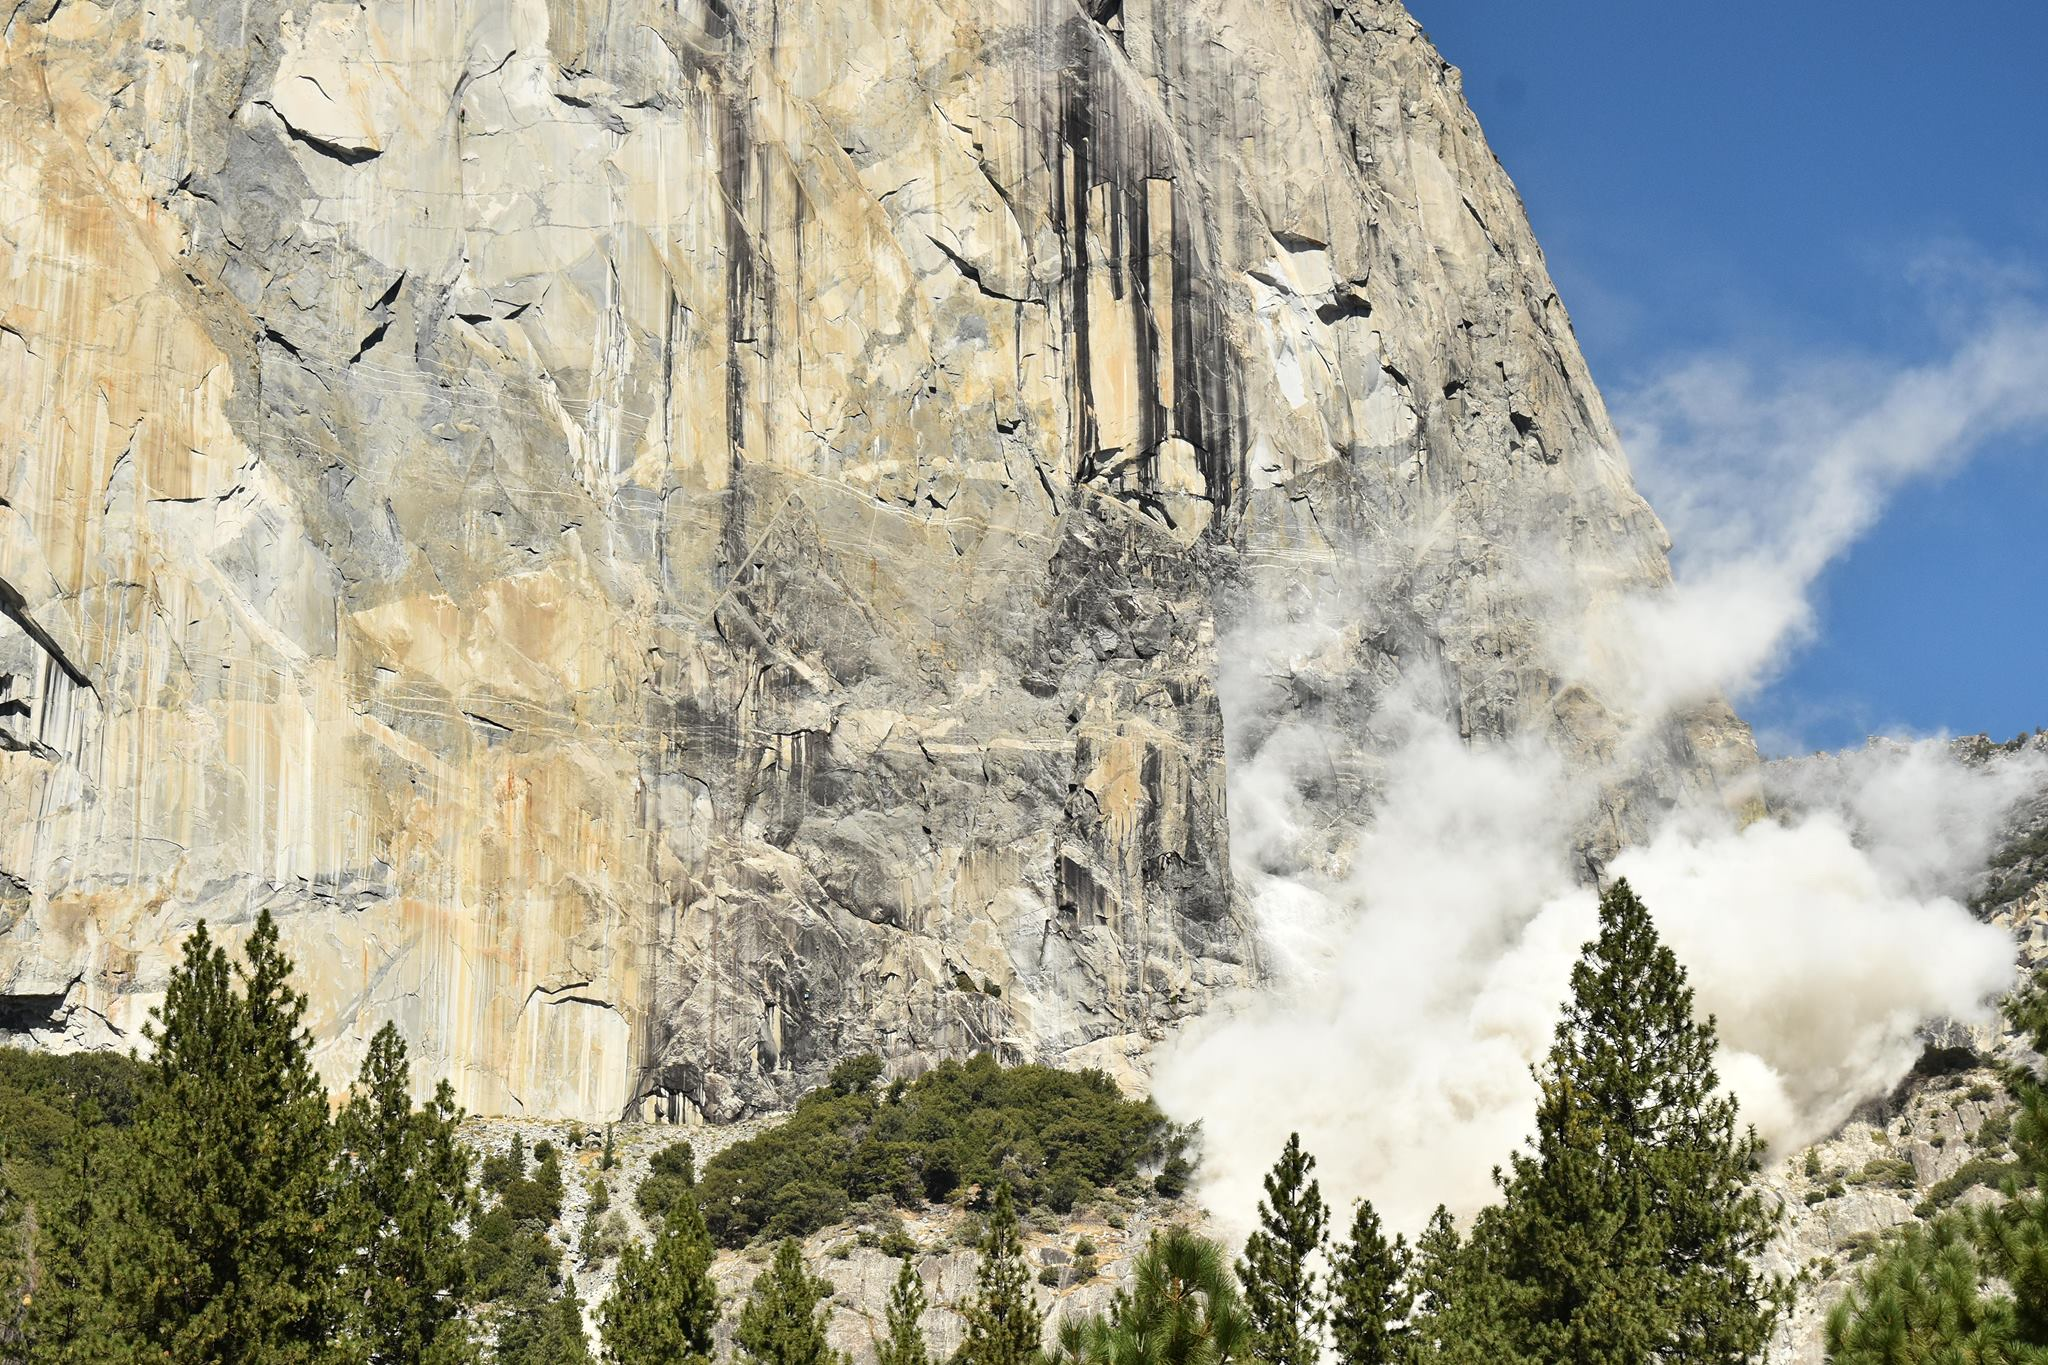 Dust rises from rockfall off El Capitan on Sept. 27, 2017, in a photo posted by Yosemite National Park.